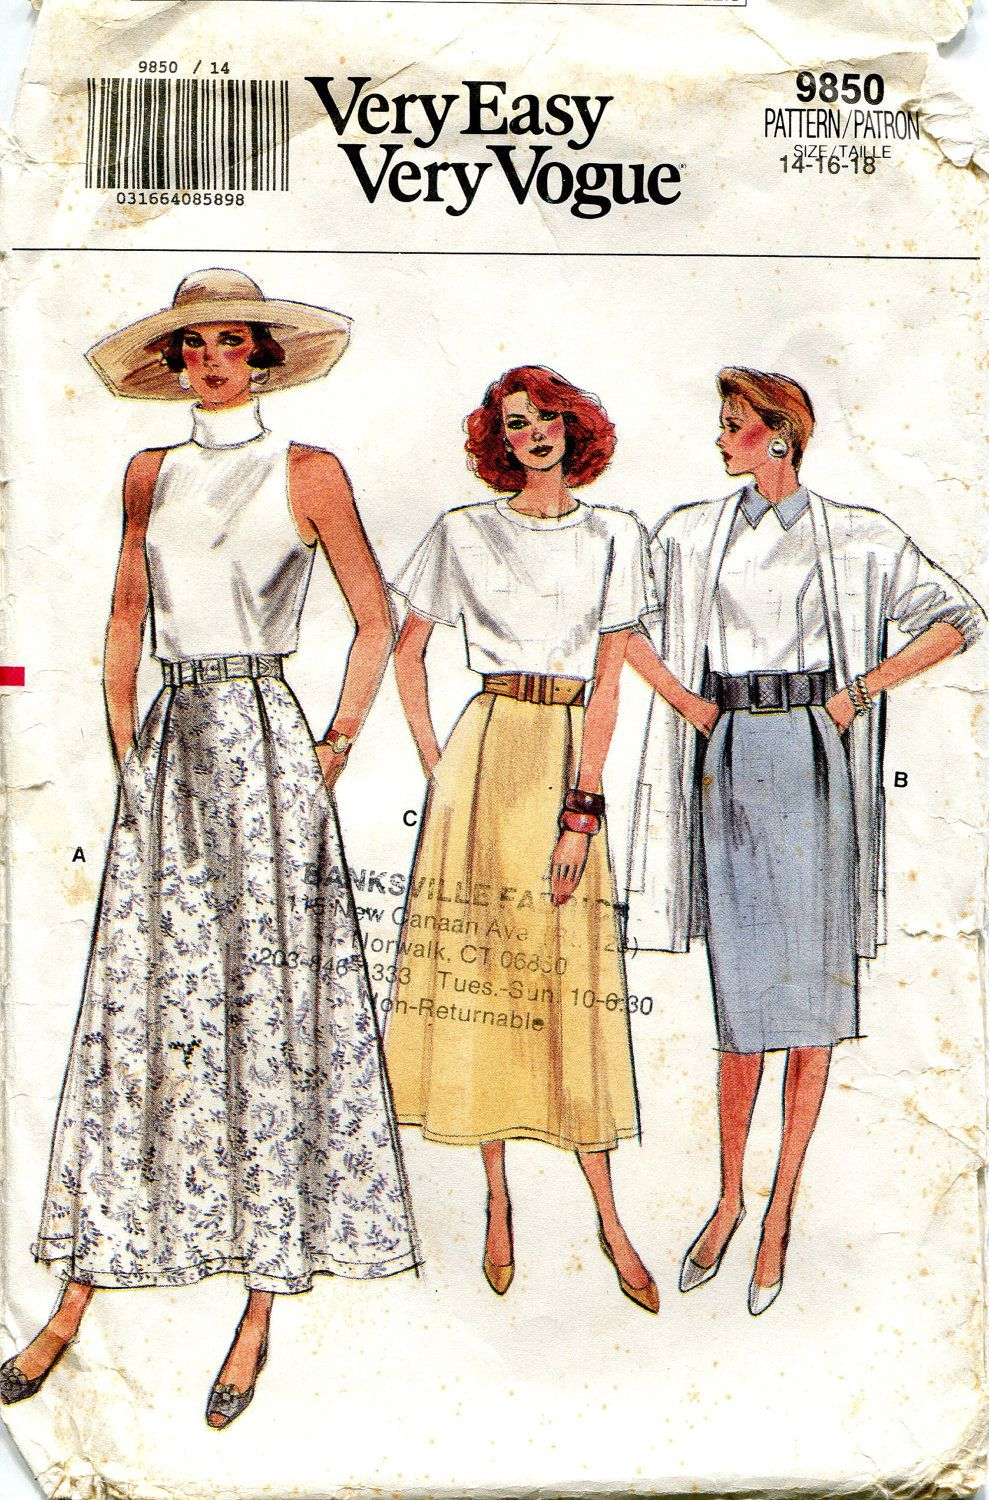 Vintage 1980s Skirt Pattern Very Easy Very Vogue by downthestreet ...